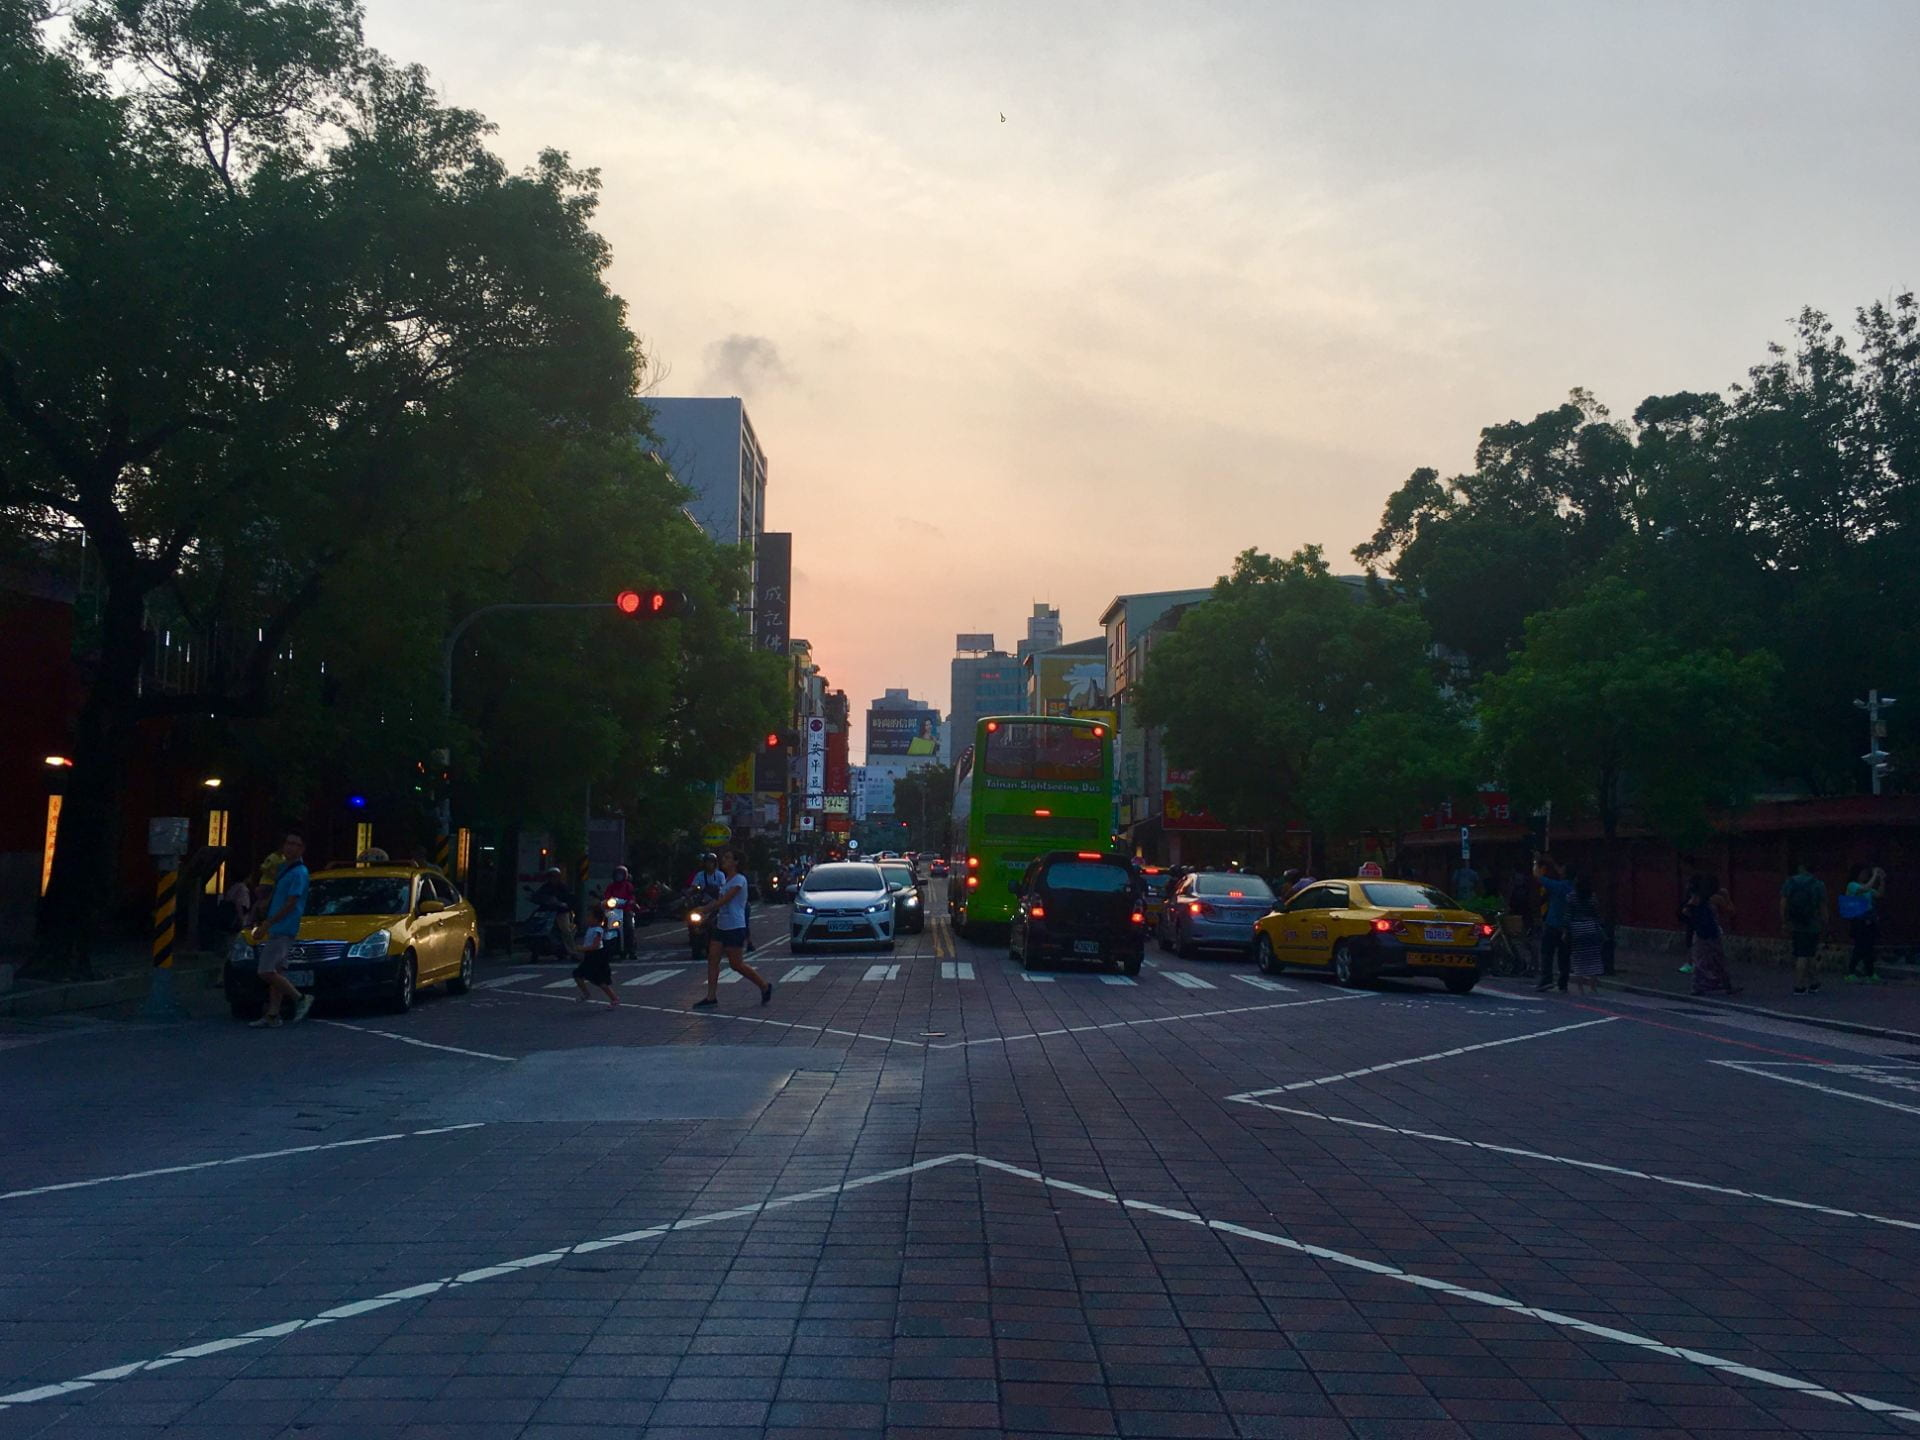 A crowd crosses a busy intersection lined with cars in Tainan as the sun sets